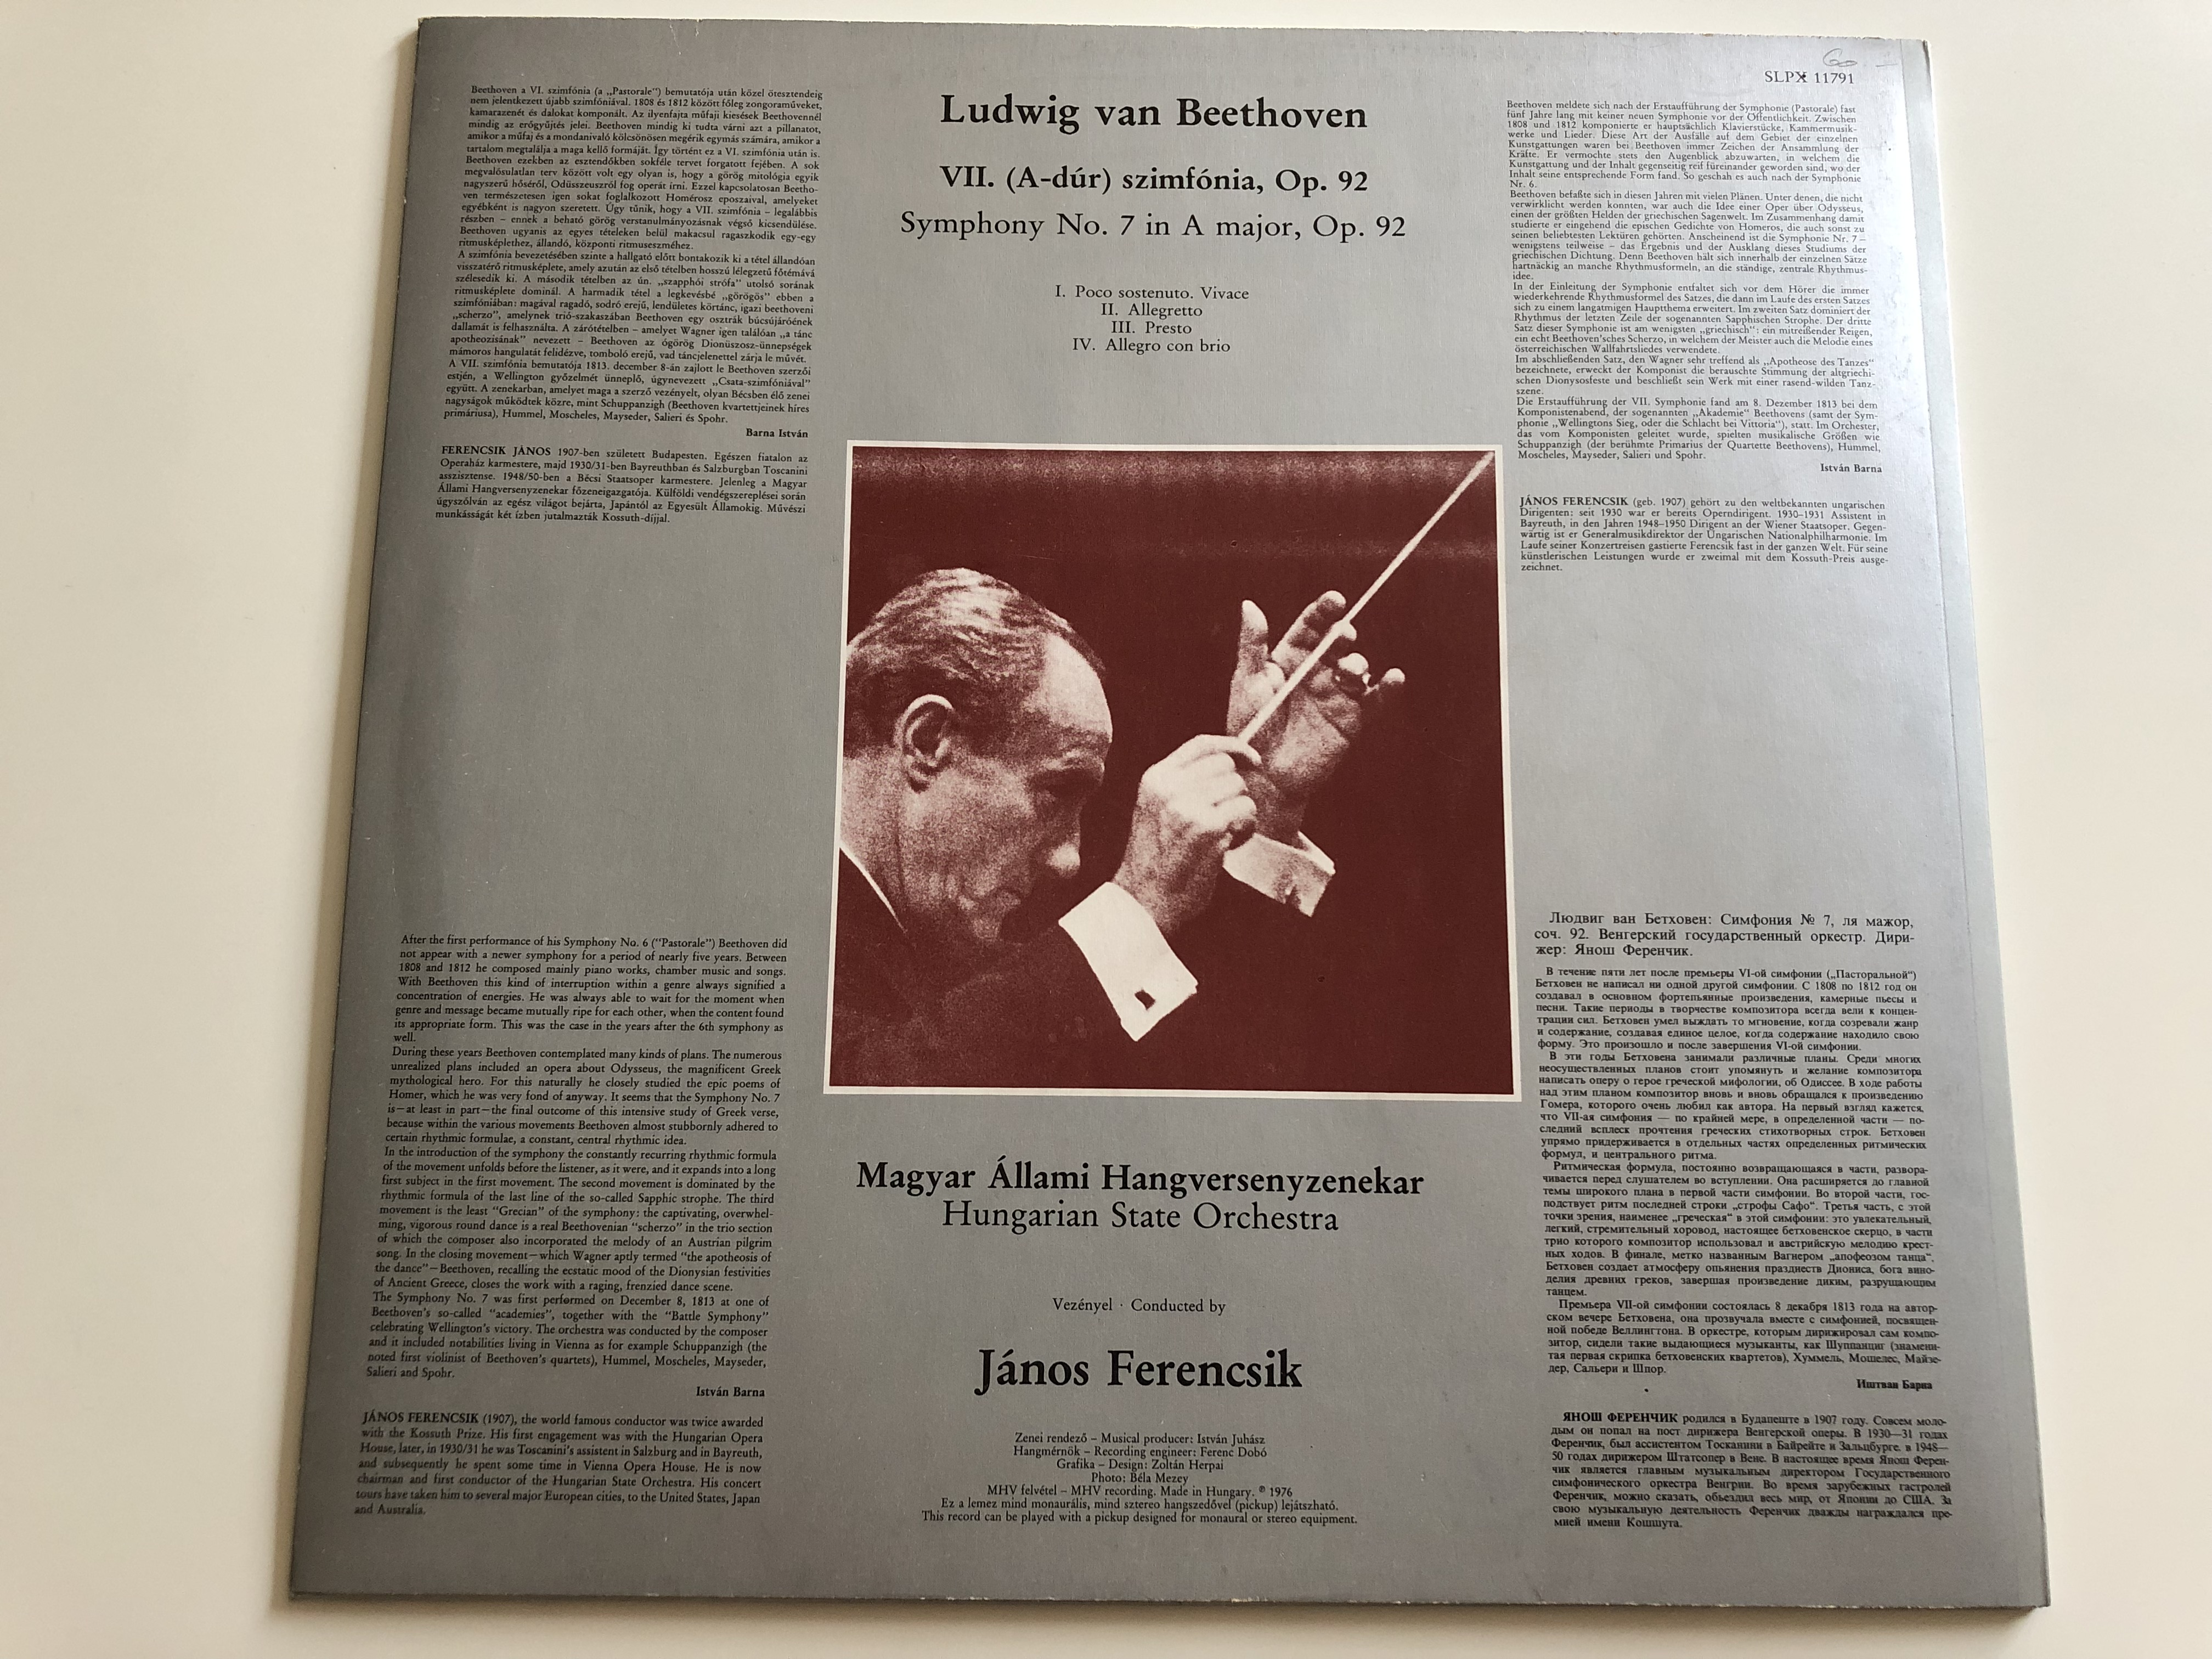 beethoven-symphony-7-hungarian-state-orchestra-conducted-j-nos-ferencsik-hungaroton-lp-stereo-mono-slpx-11791-3-.jpg